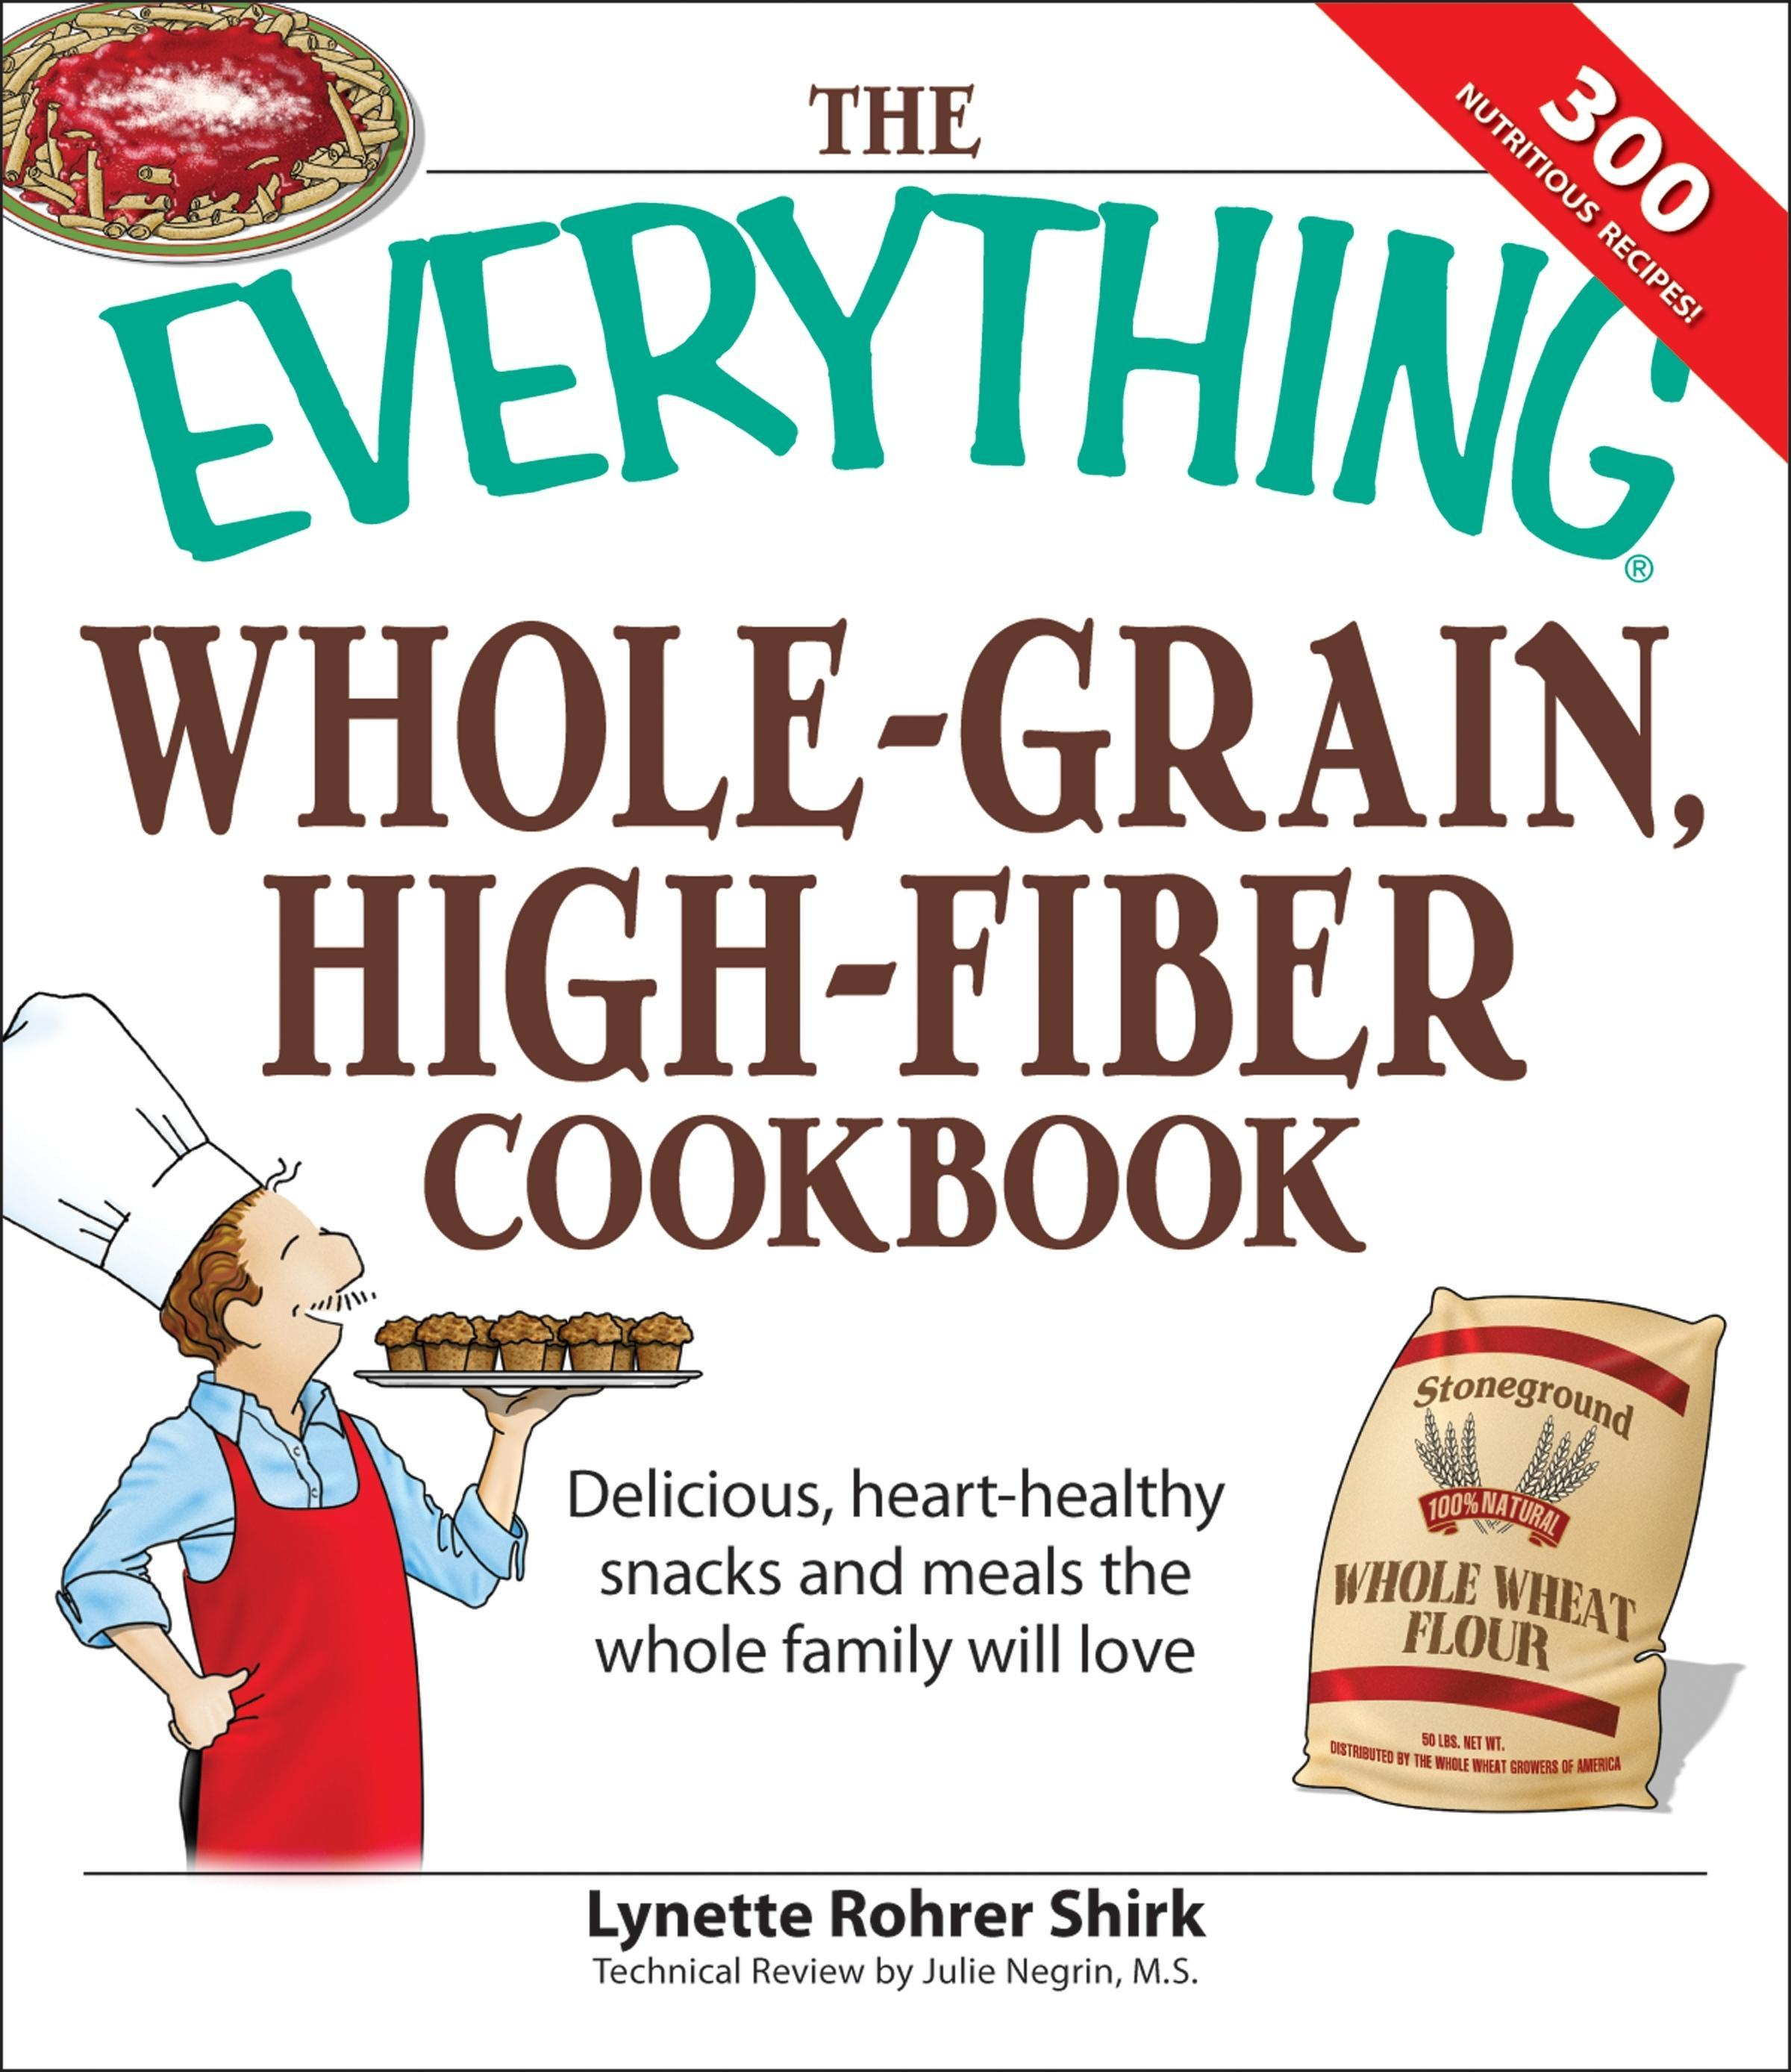 Everything Whole Grain, High Fiber Cookbook: Delicious, heart-healthy snacks and meals the whole family will love